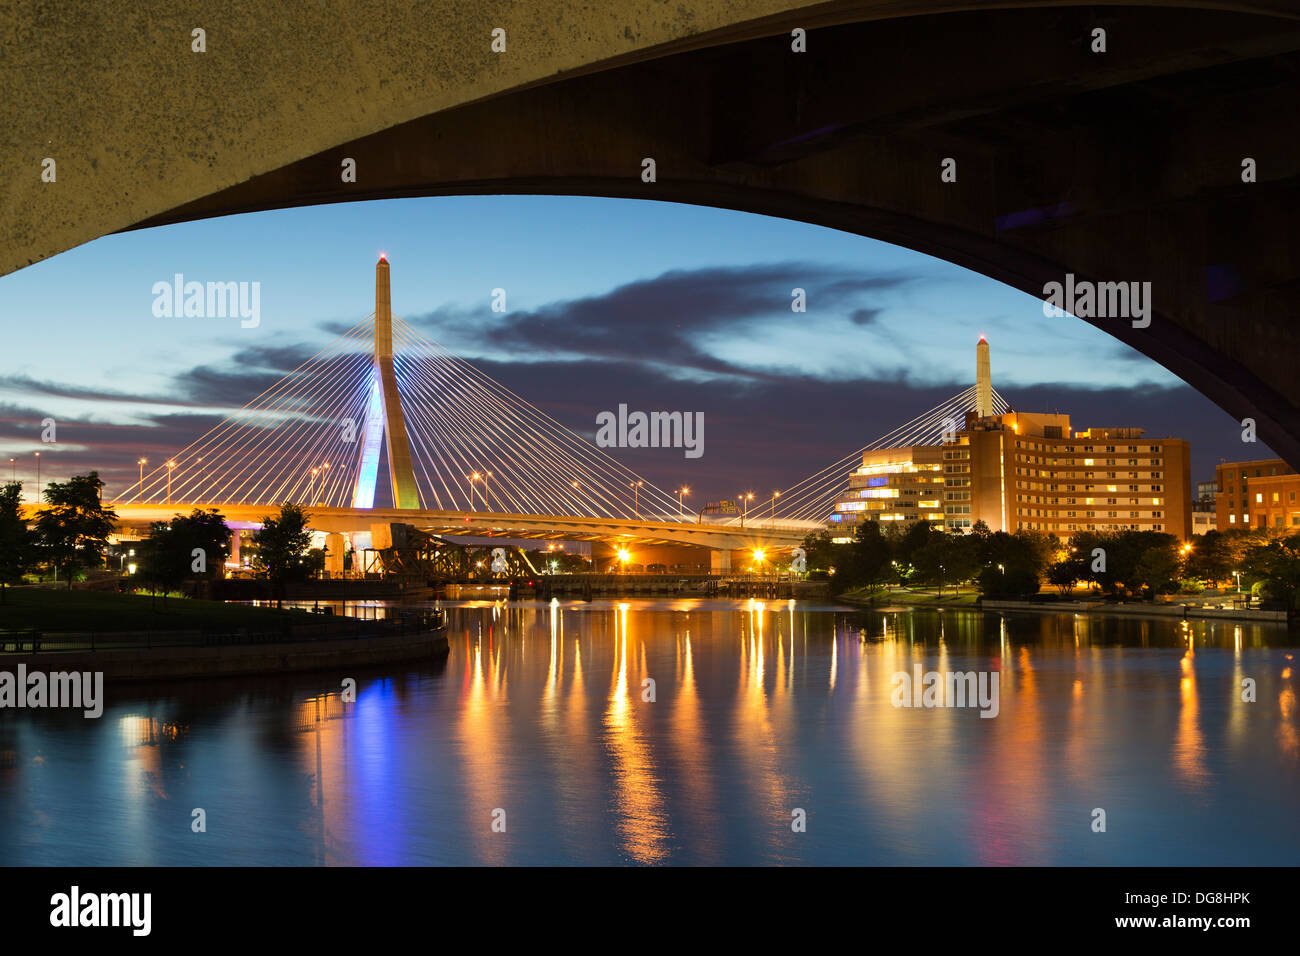 Leonard P. Zakim Bunker Hill Memorial Bridge (pont Zakim) et Charles River, Boston, Massachusetts, USA Photo Stock